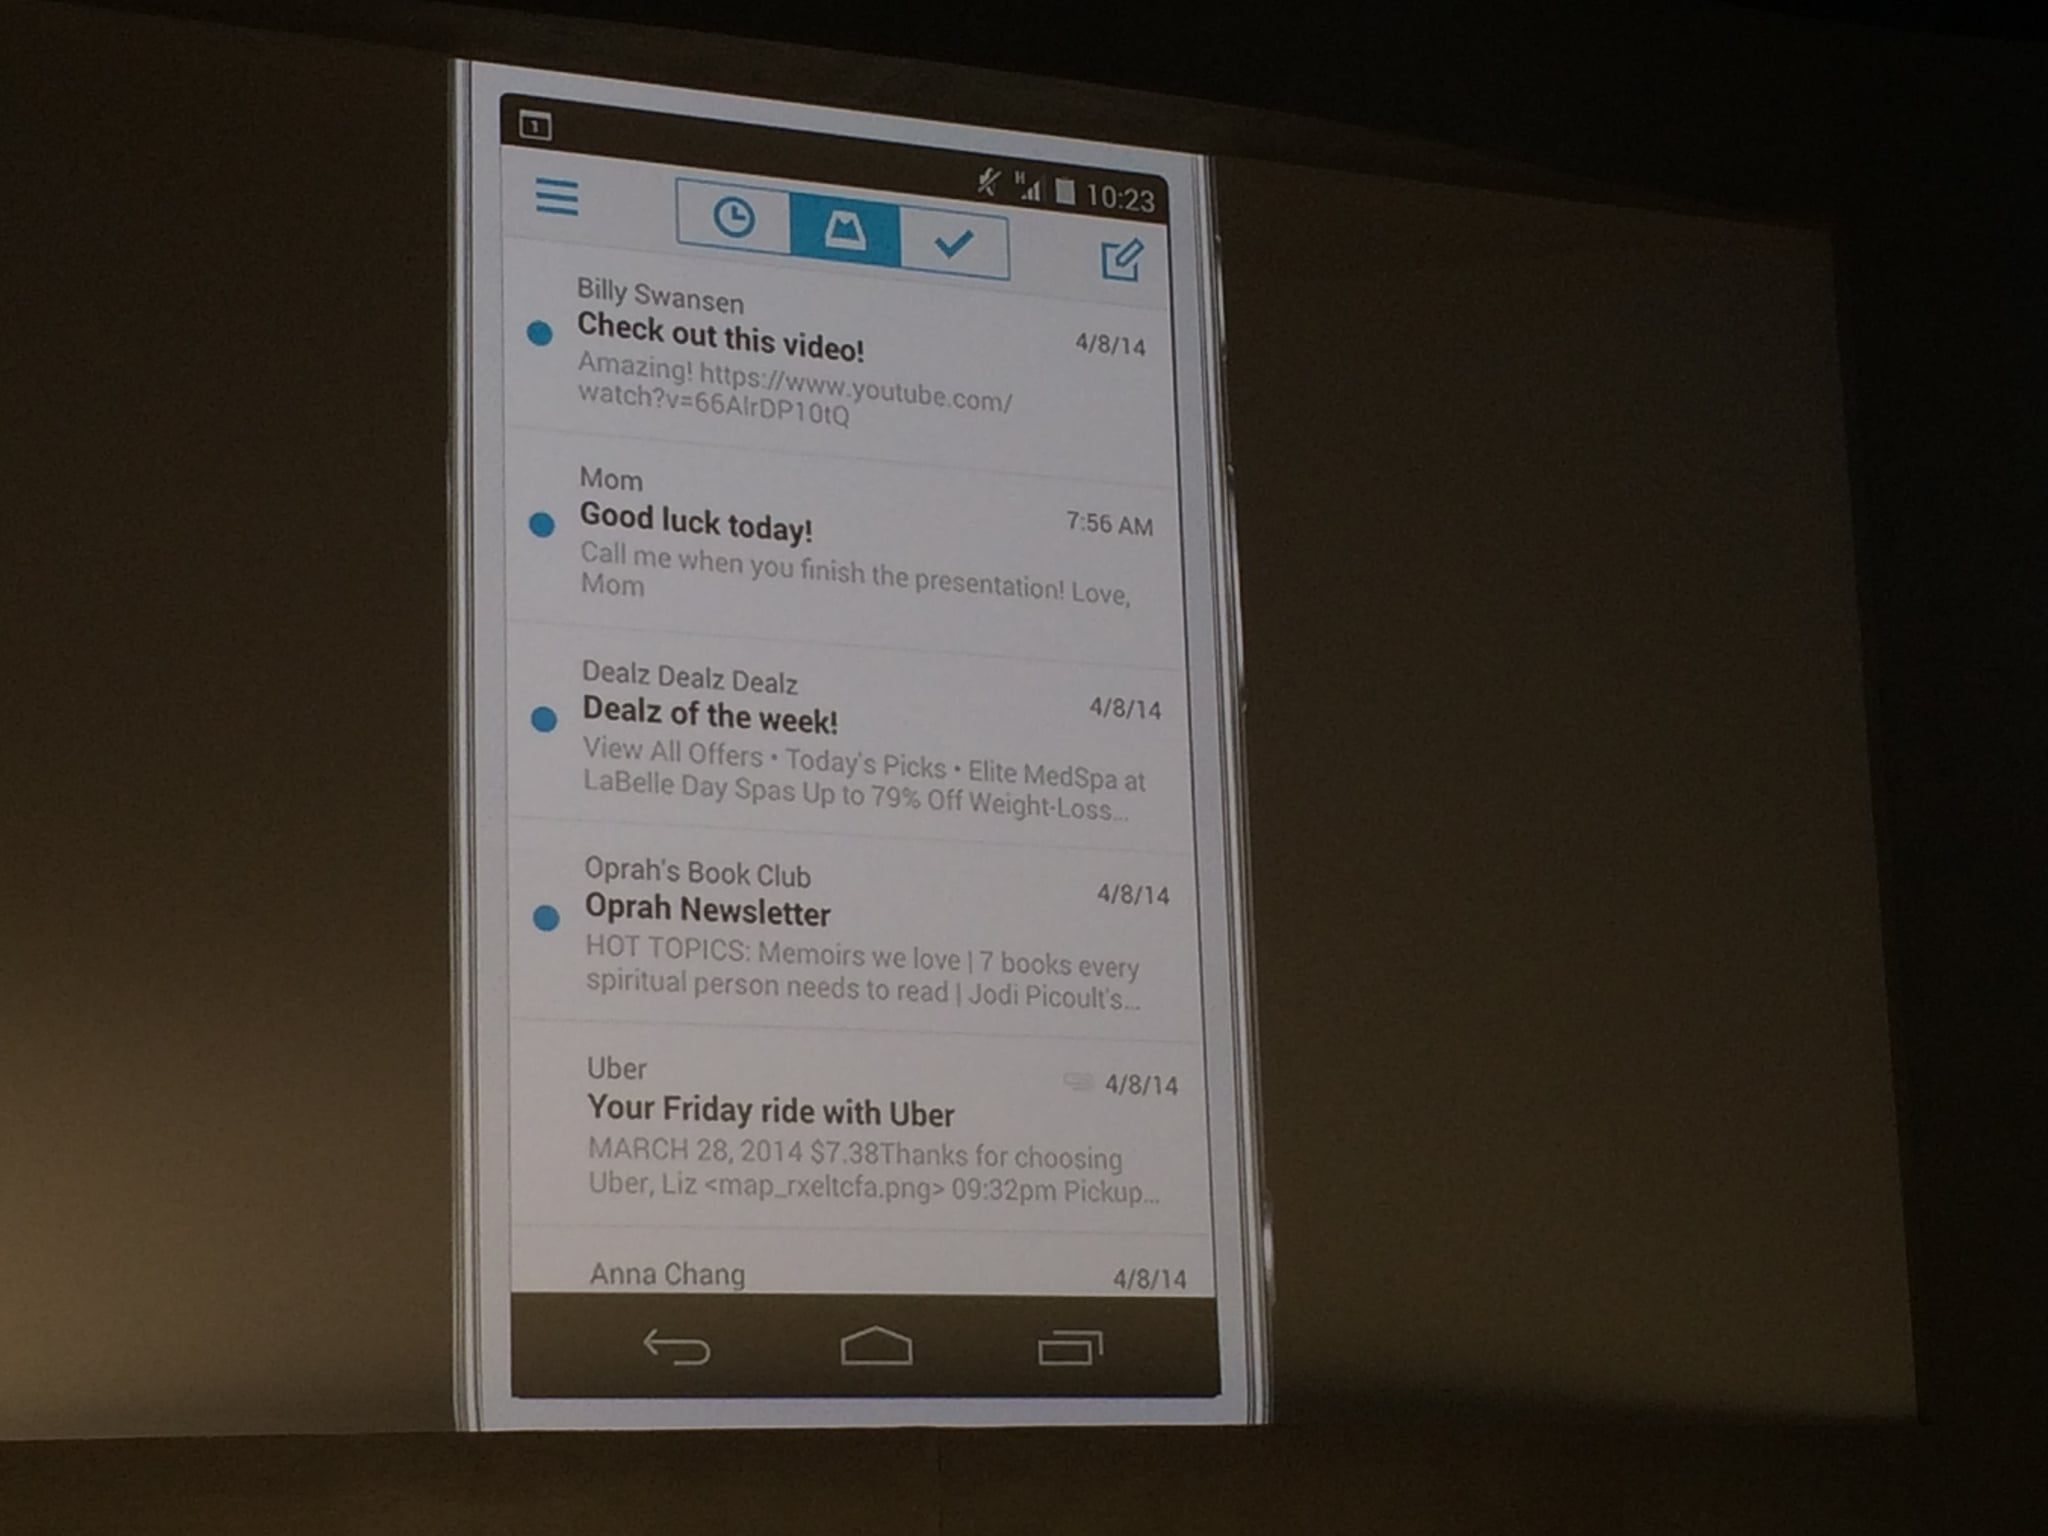 Mailbox for Android — Inbox View